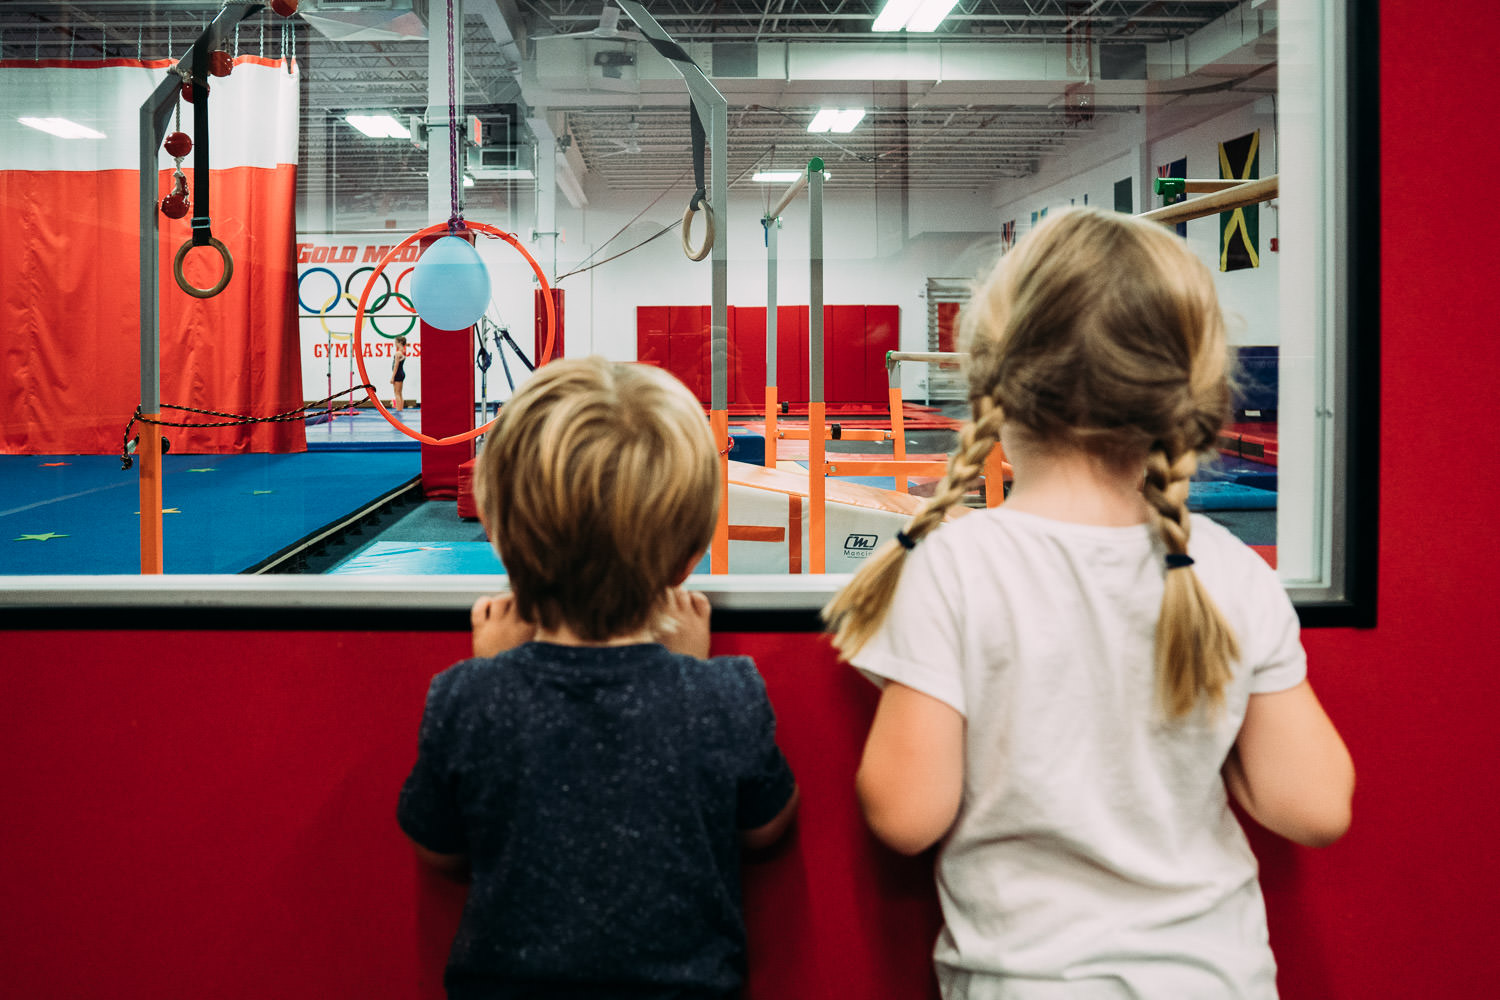 Two children look through the window of a gym.